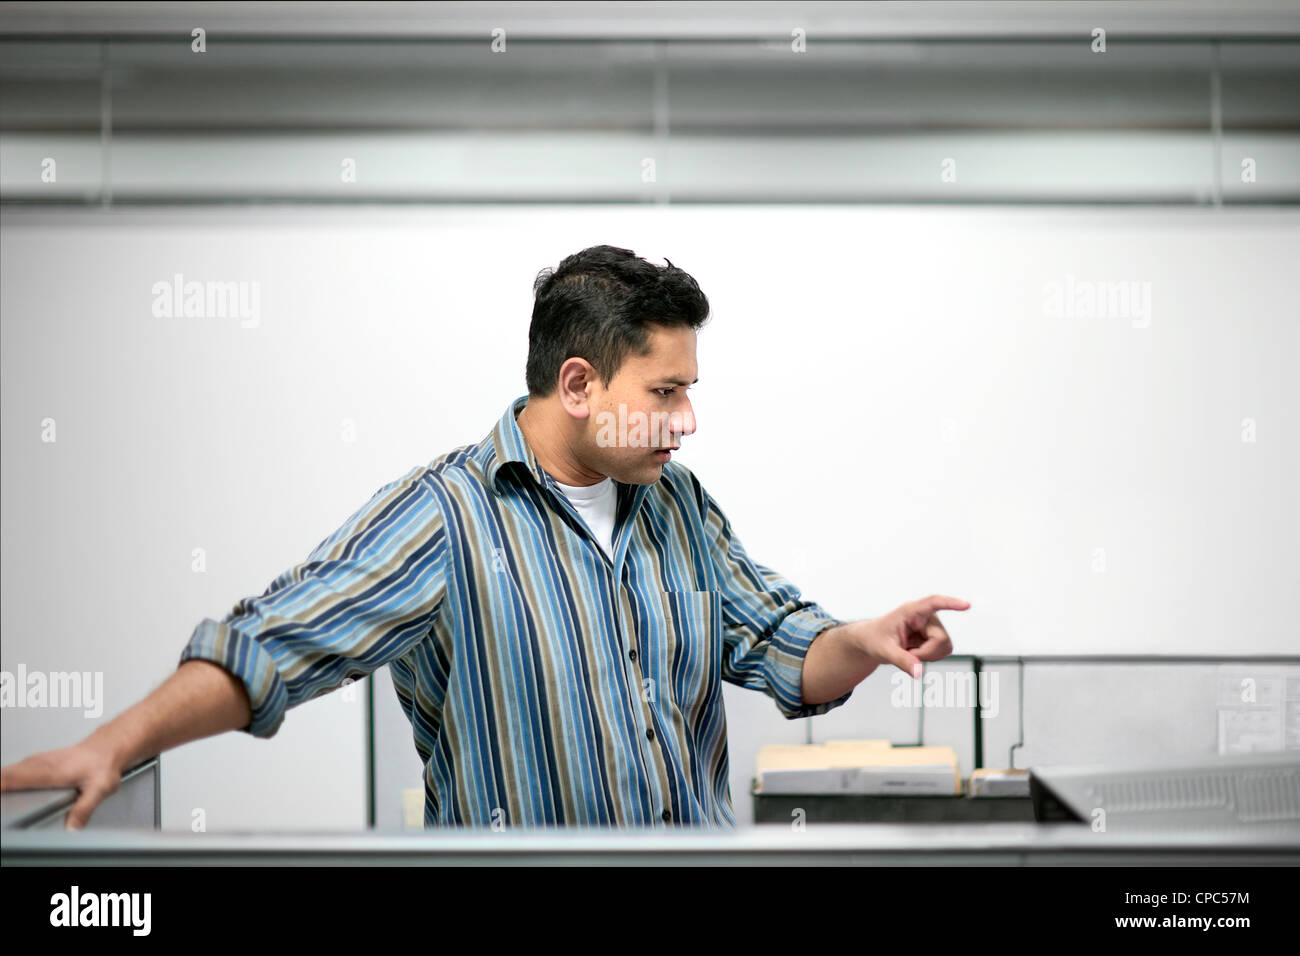 A worker points his finger while standing in a cubicle - Stock Image